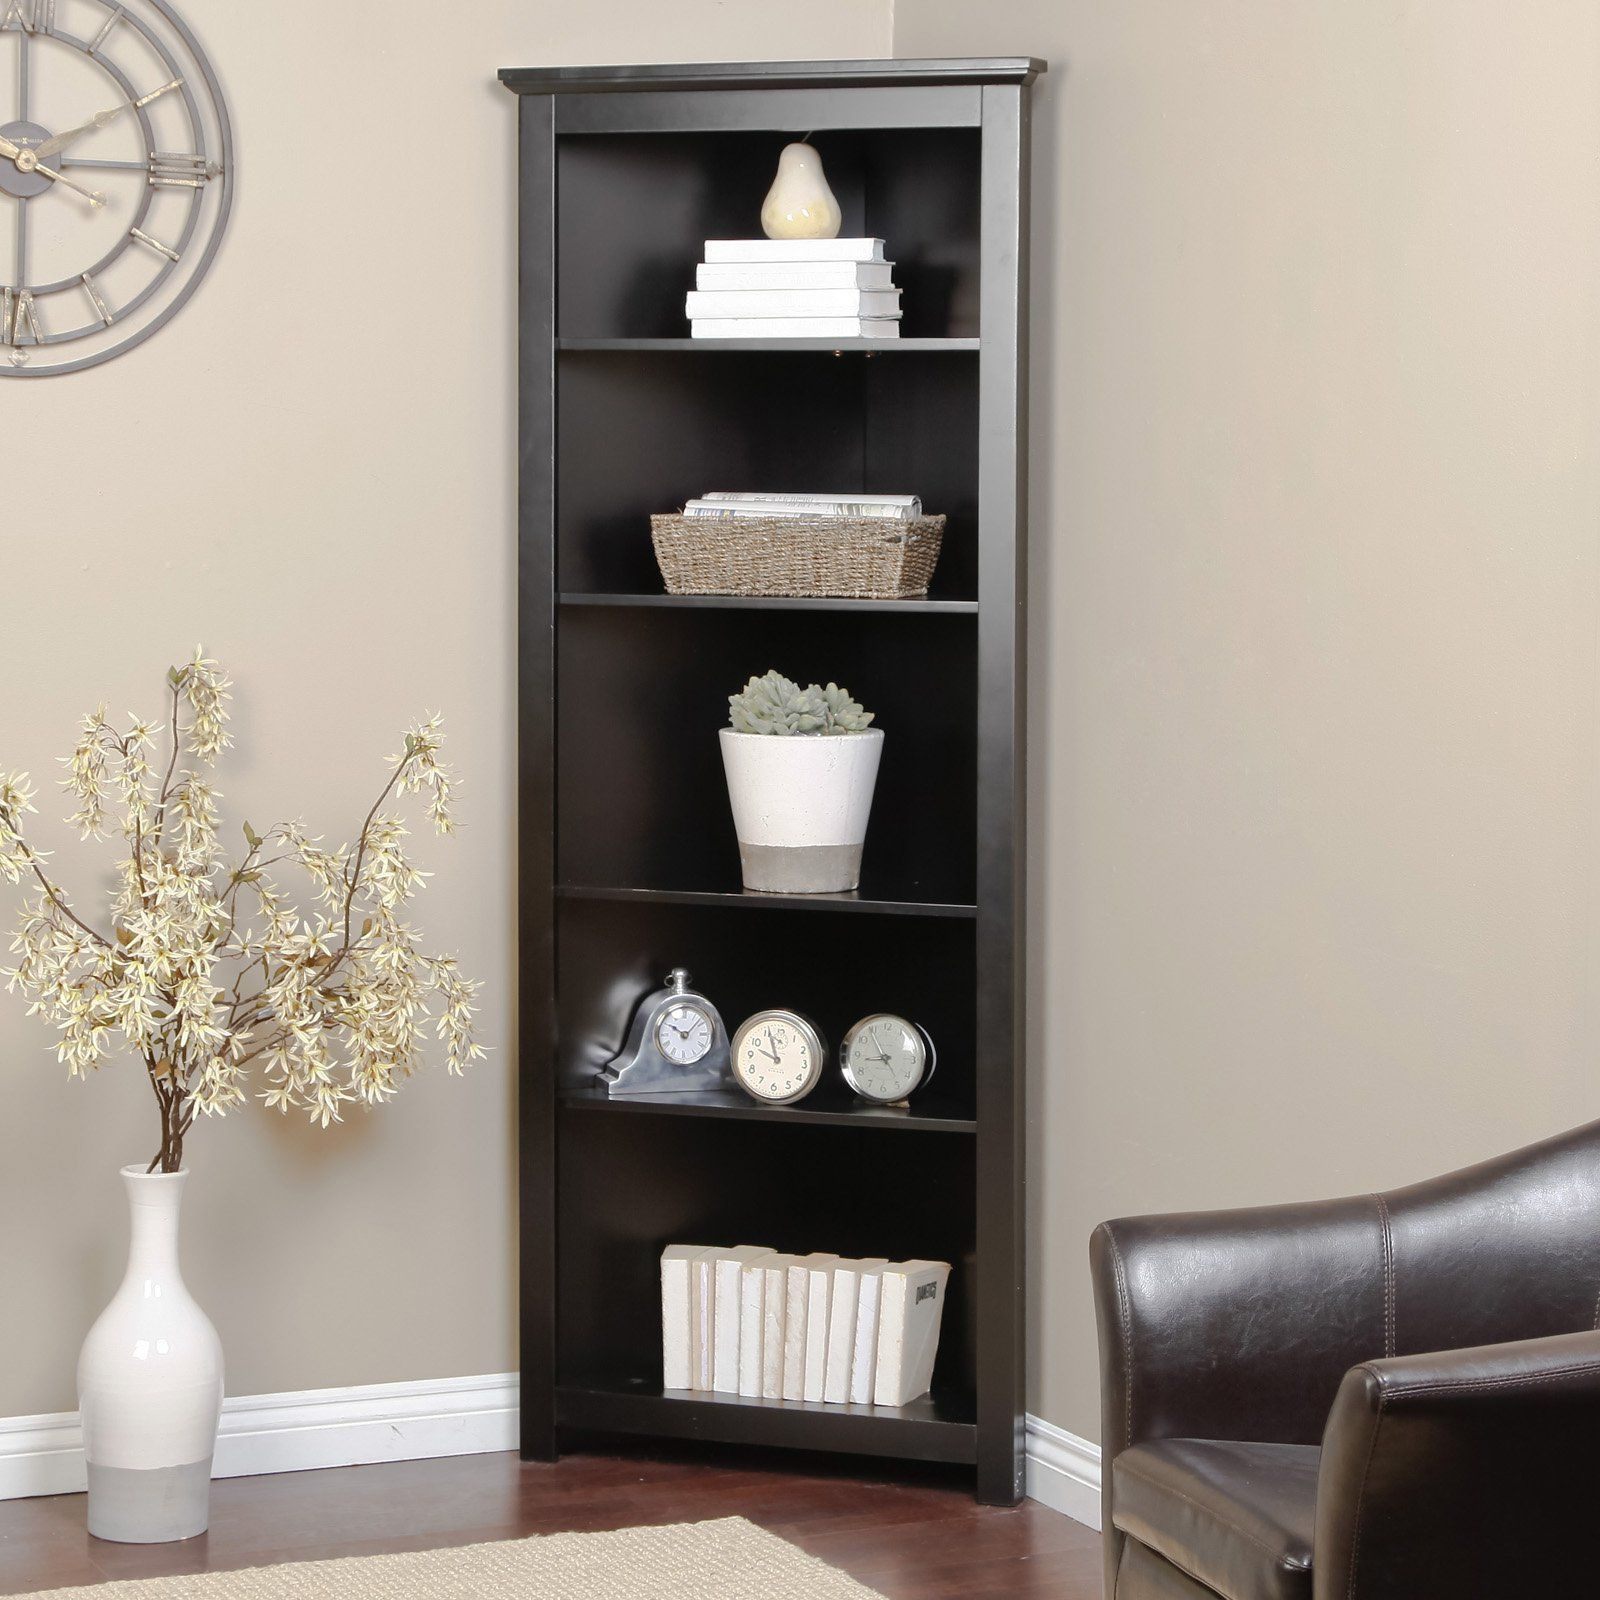 Finley Home Redford Corner Bookcase Corner Cabinet Living Room Corner Bookshelves Living Room Corner